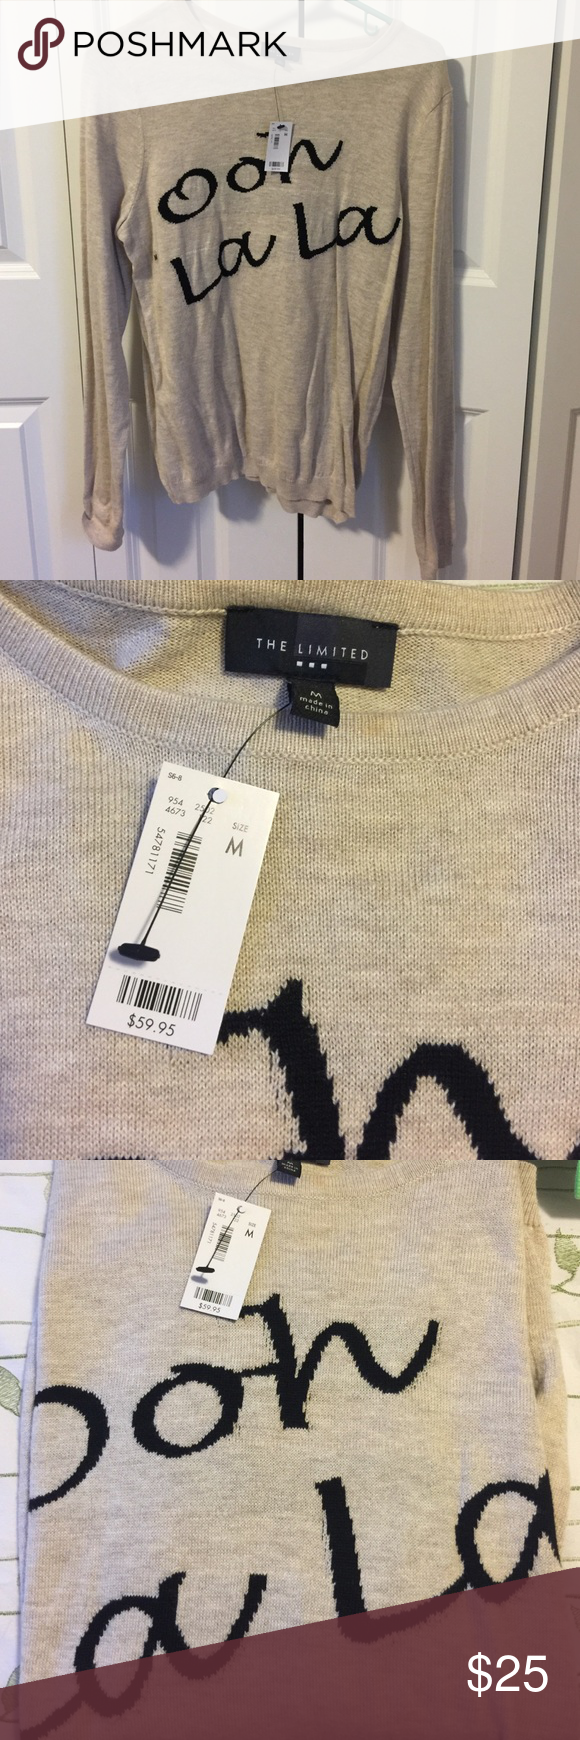 Ooh la la sweater nwt ooh la la sweater the limited sweater with words never worn from smoke free publicscrutiny Image collections